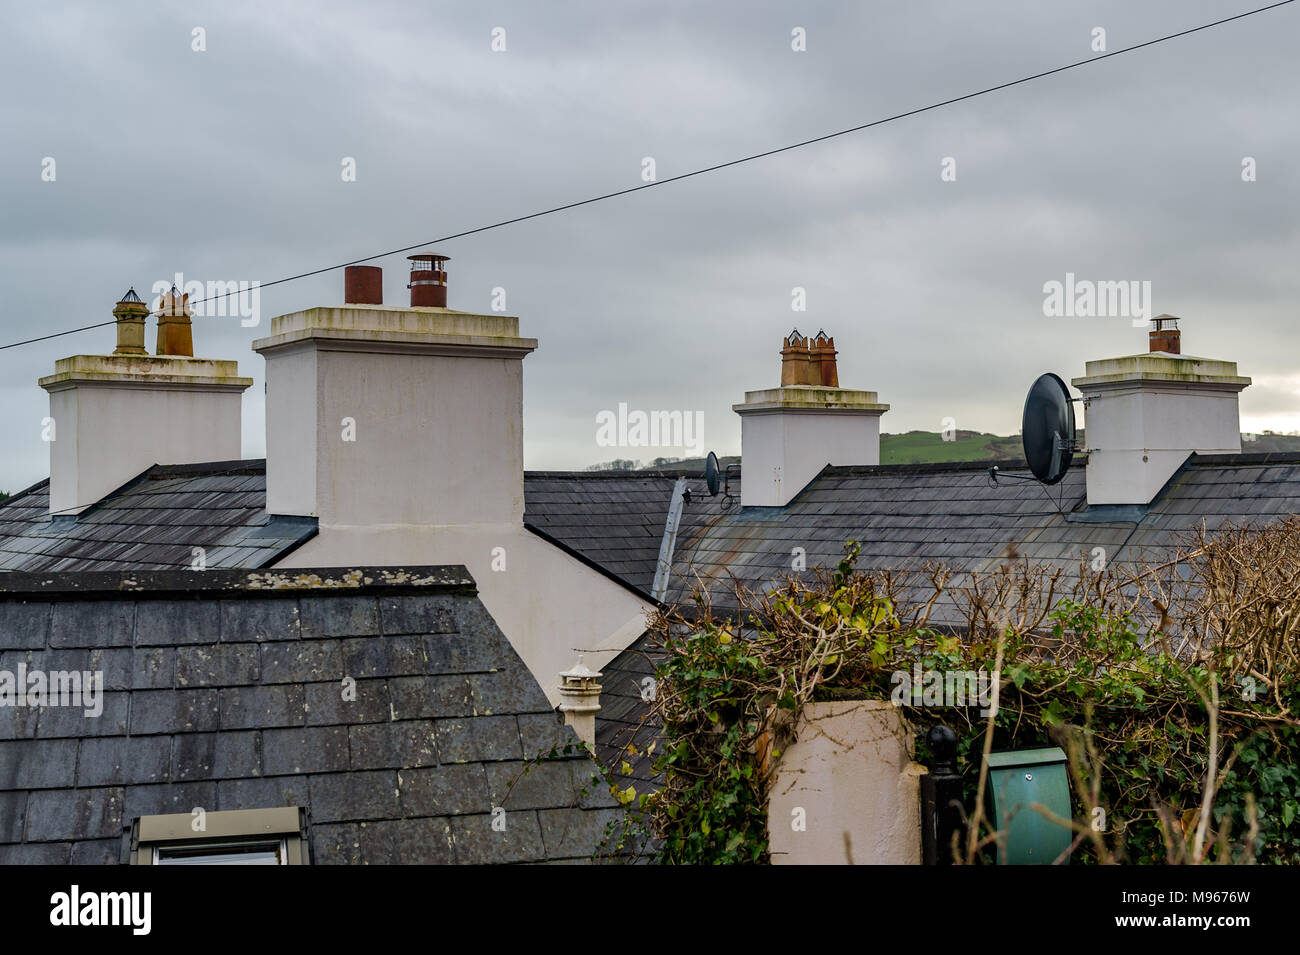 Chimney pots and roofs of houses in West Cork, Ireland with copy space. - Stock Image